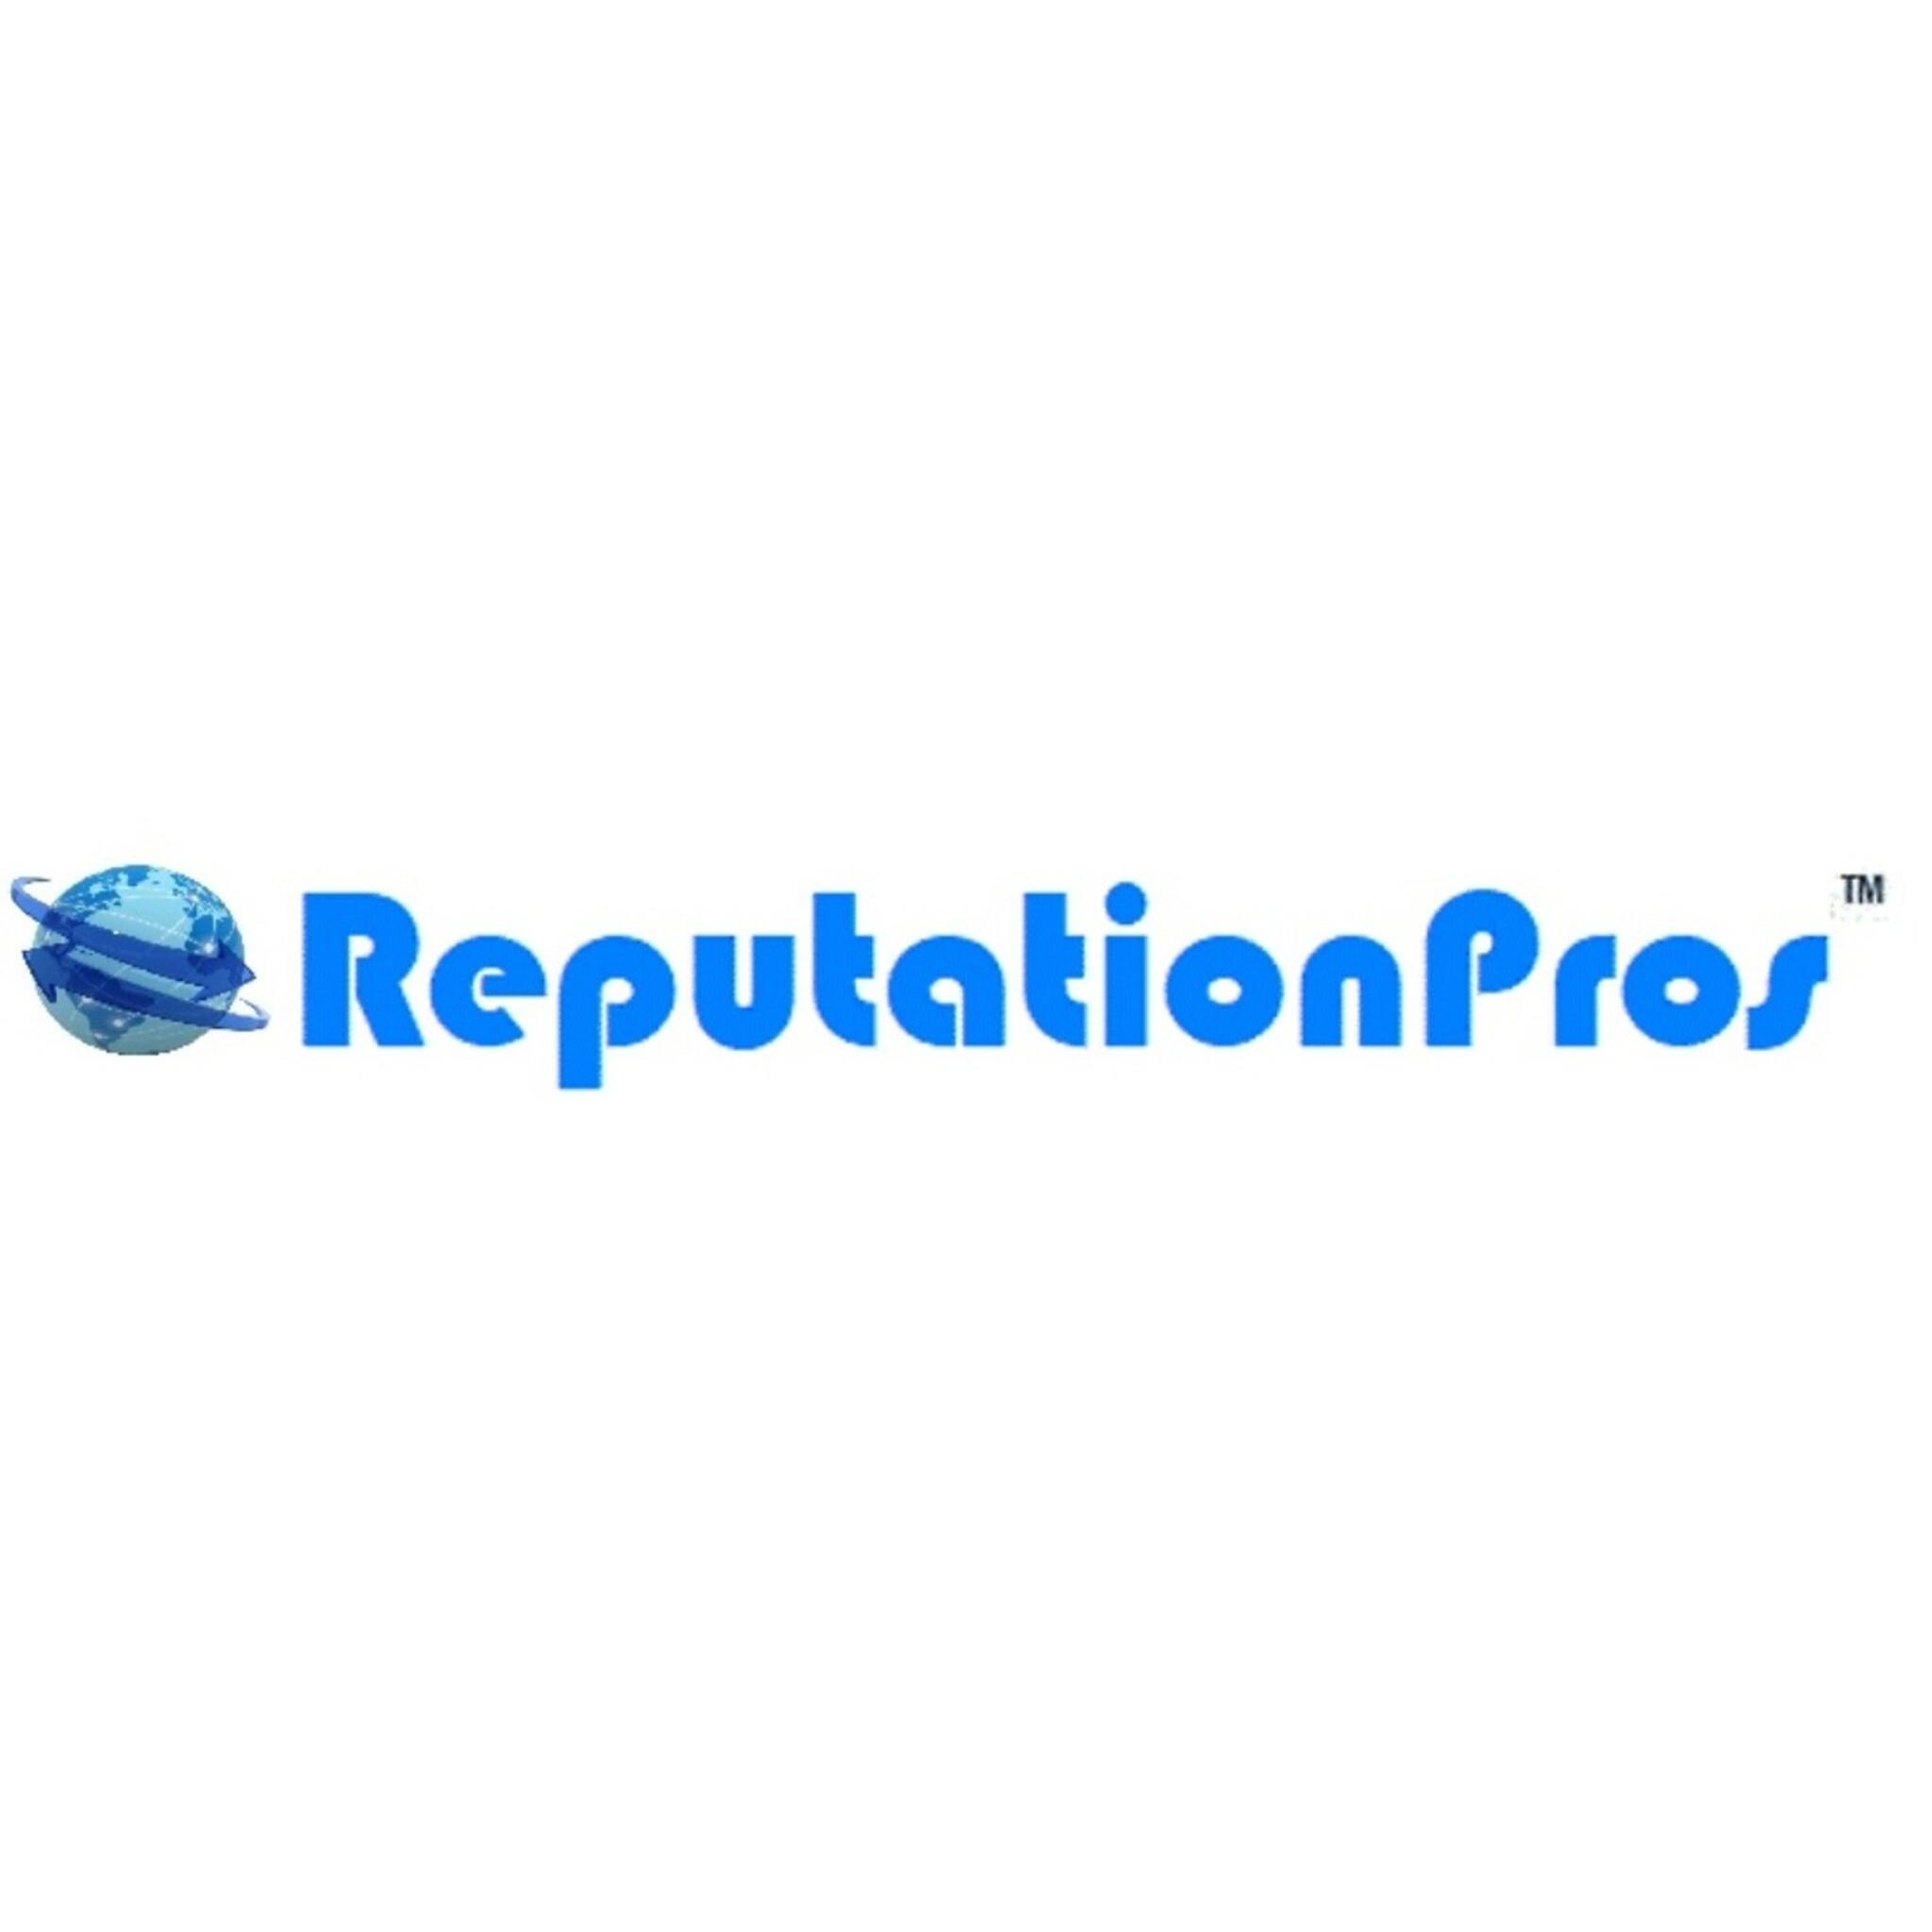 Reputation pros LLC - Danbury, CT - Business & Secretarial